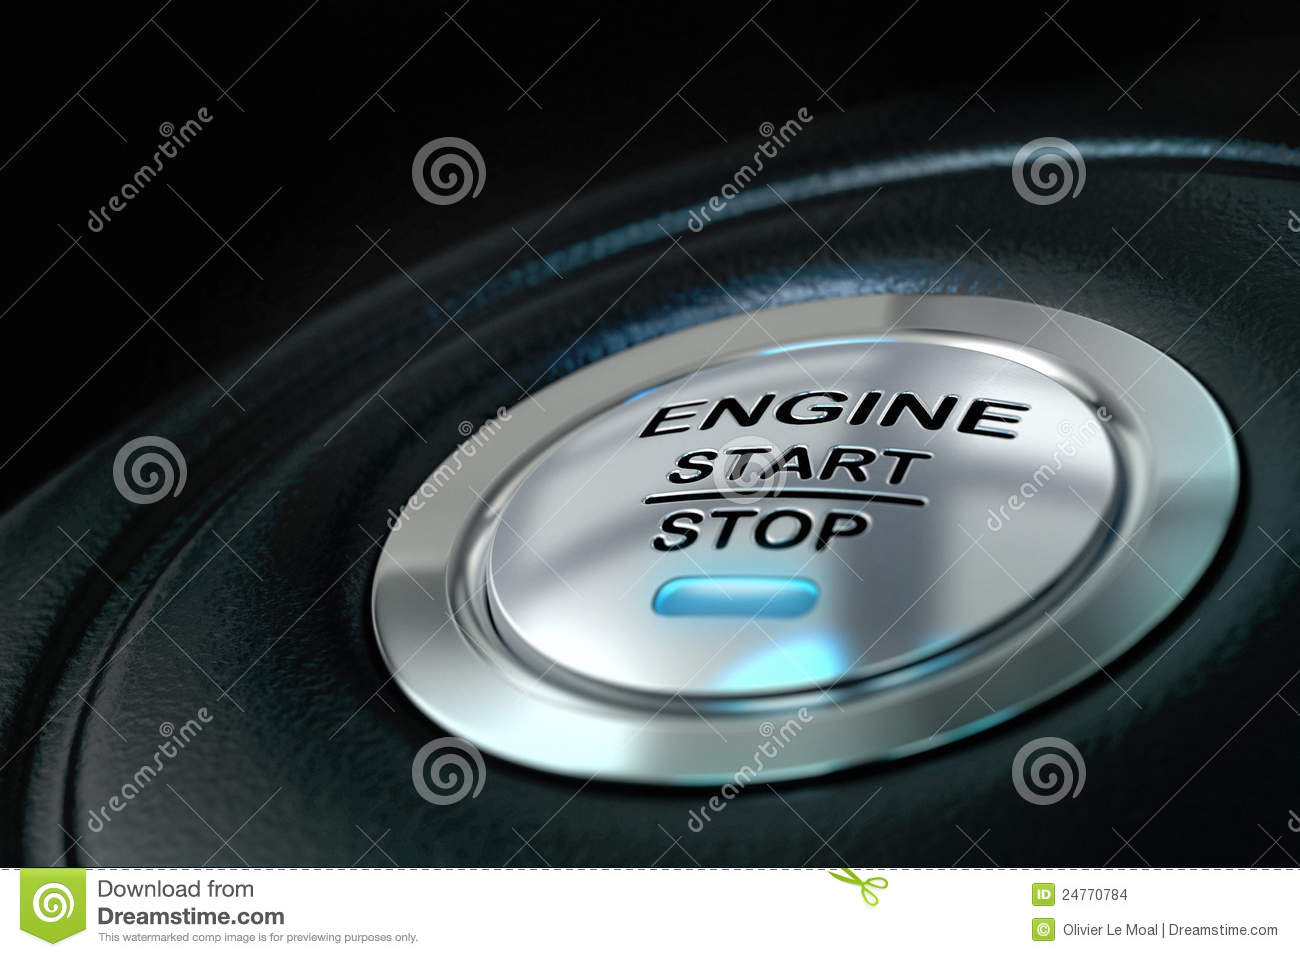 car engine start and stop button stock images image 24770784. Black Bedroom Furniture Sets. Home Design Ideas